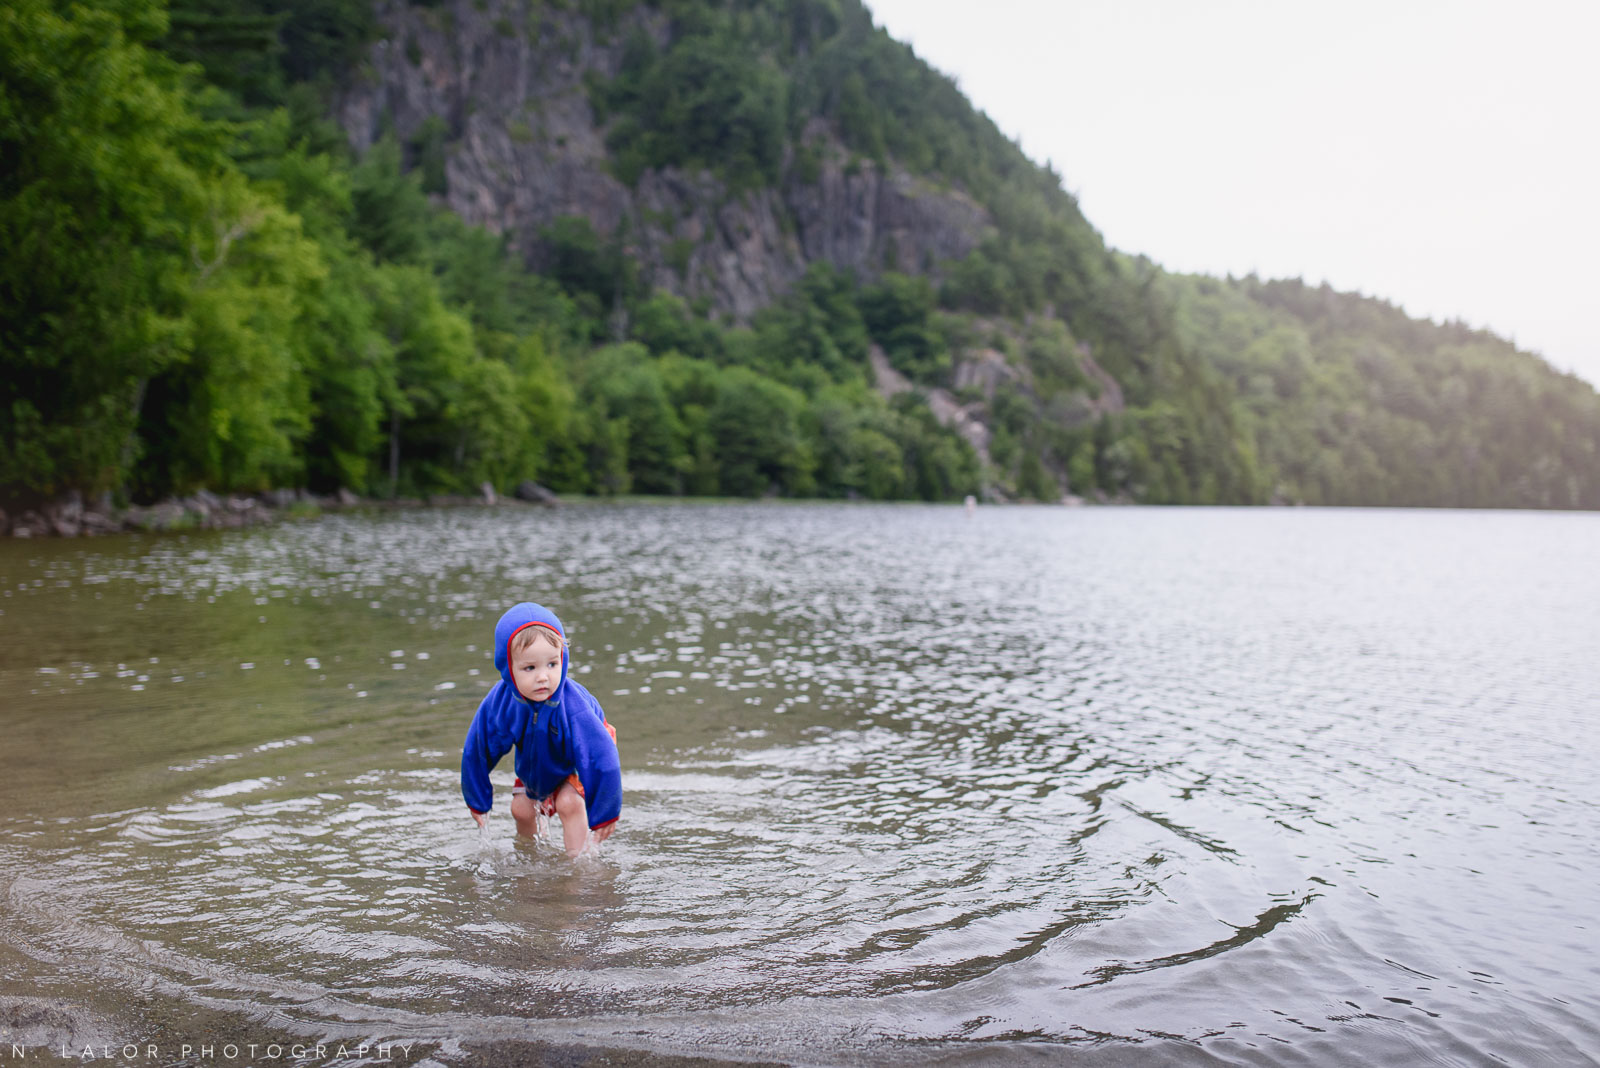 It's a little cold to be swimming there, toddler. Acadia National Park in Bar Harbor Maine. Photo by N Lalor Photography.